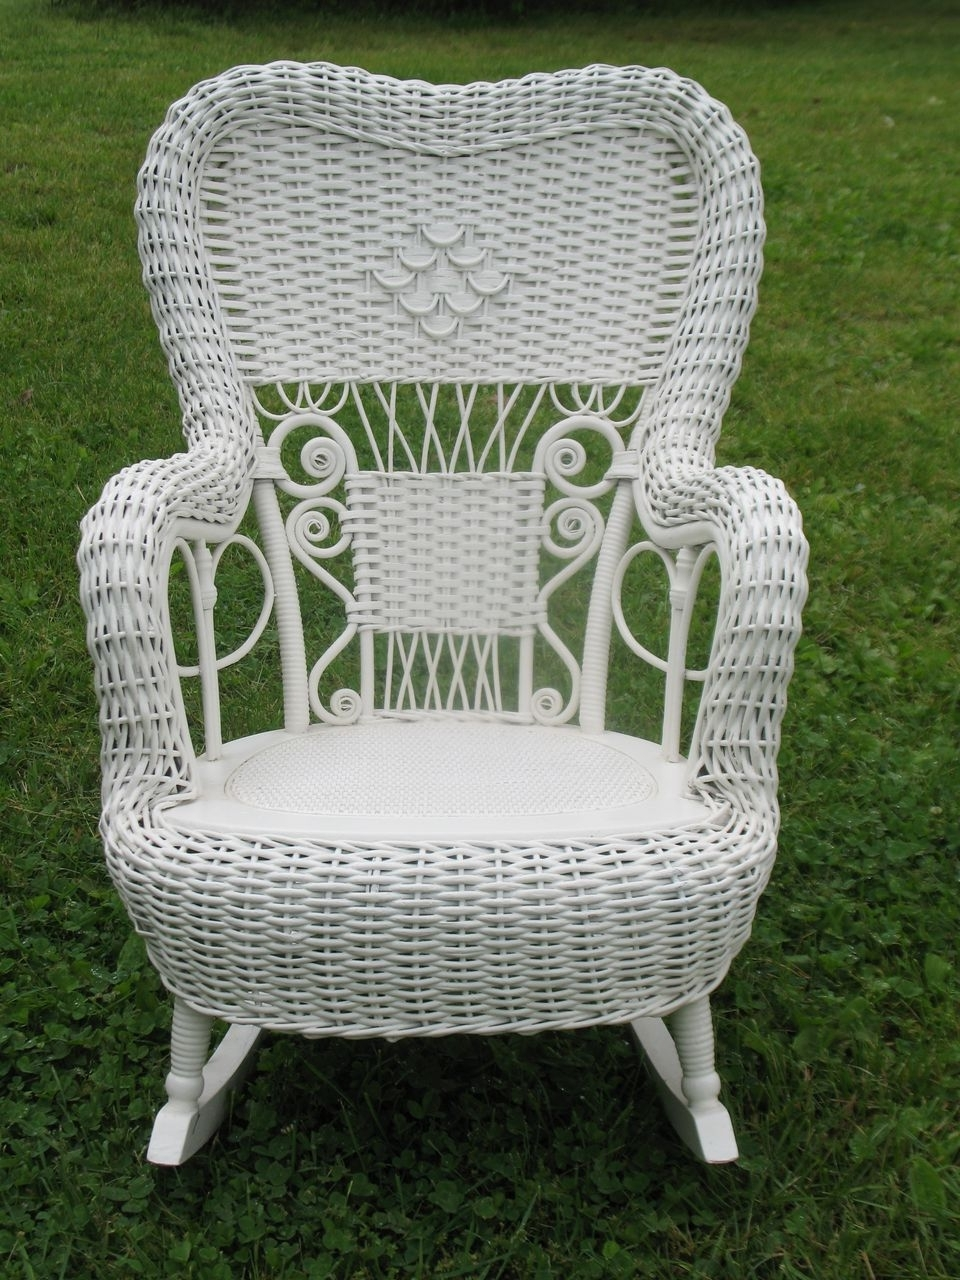 Fashionable Outdoor Vintage Wicker Rocking Chair With Green Color Chairs Rocker Inside Vintage Wicker Rocking Chairs (View 8 of 20)